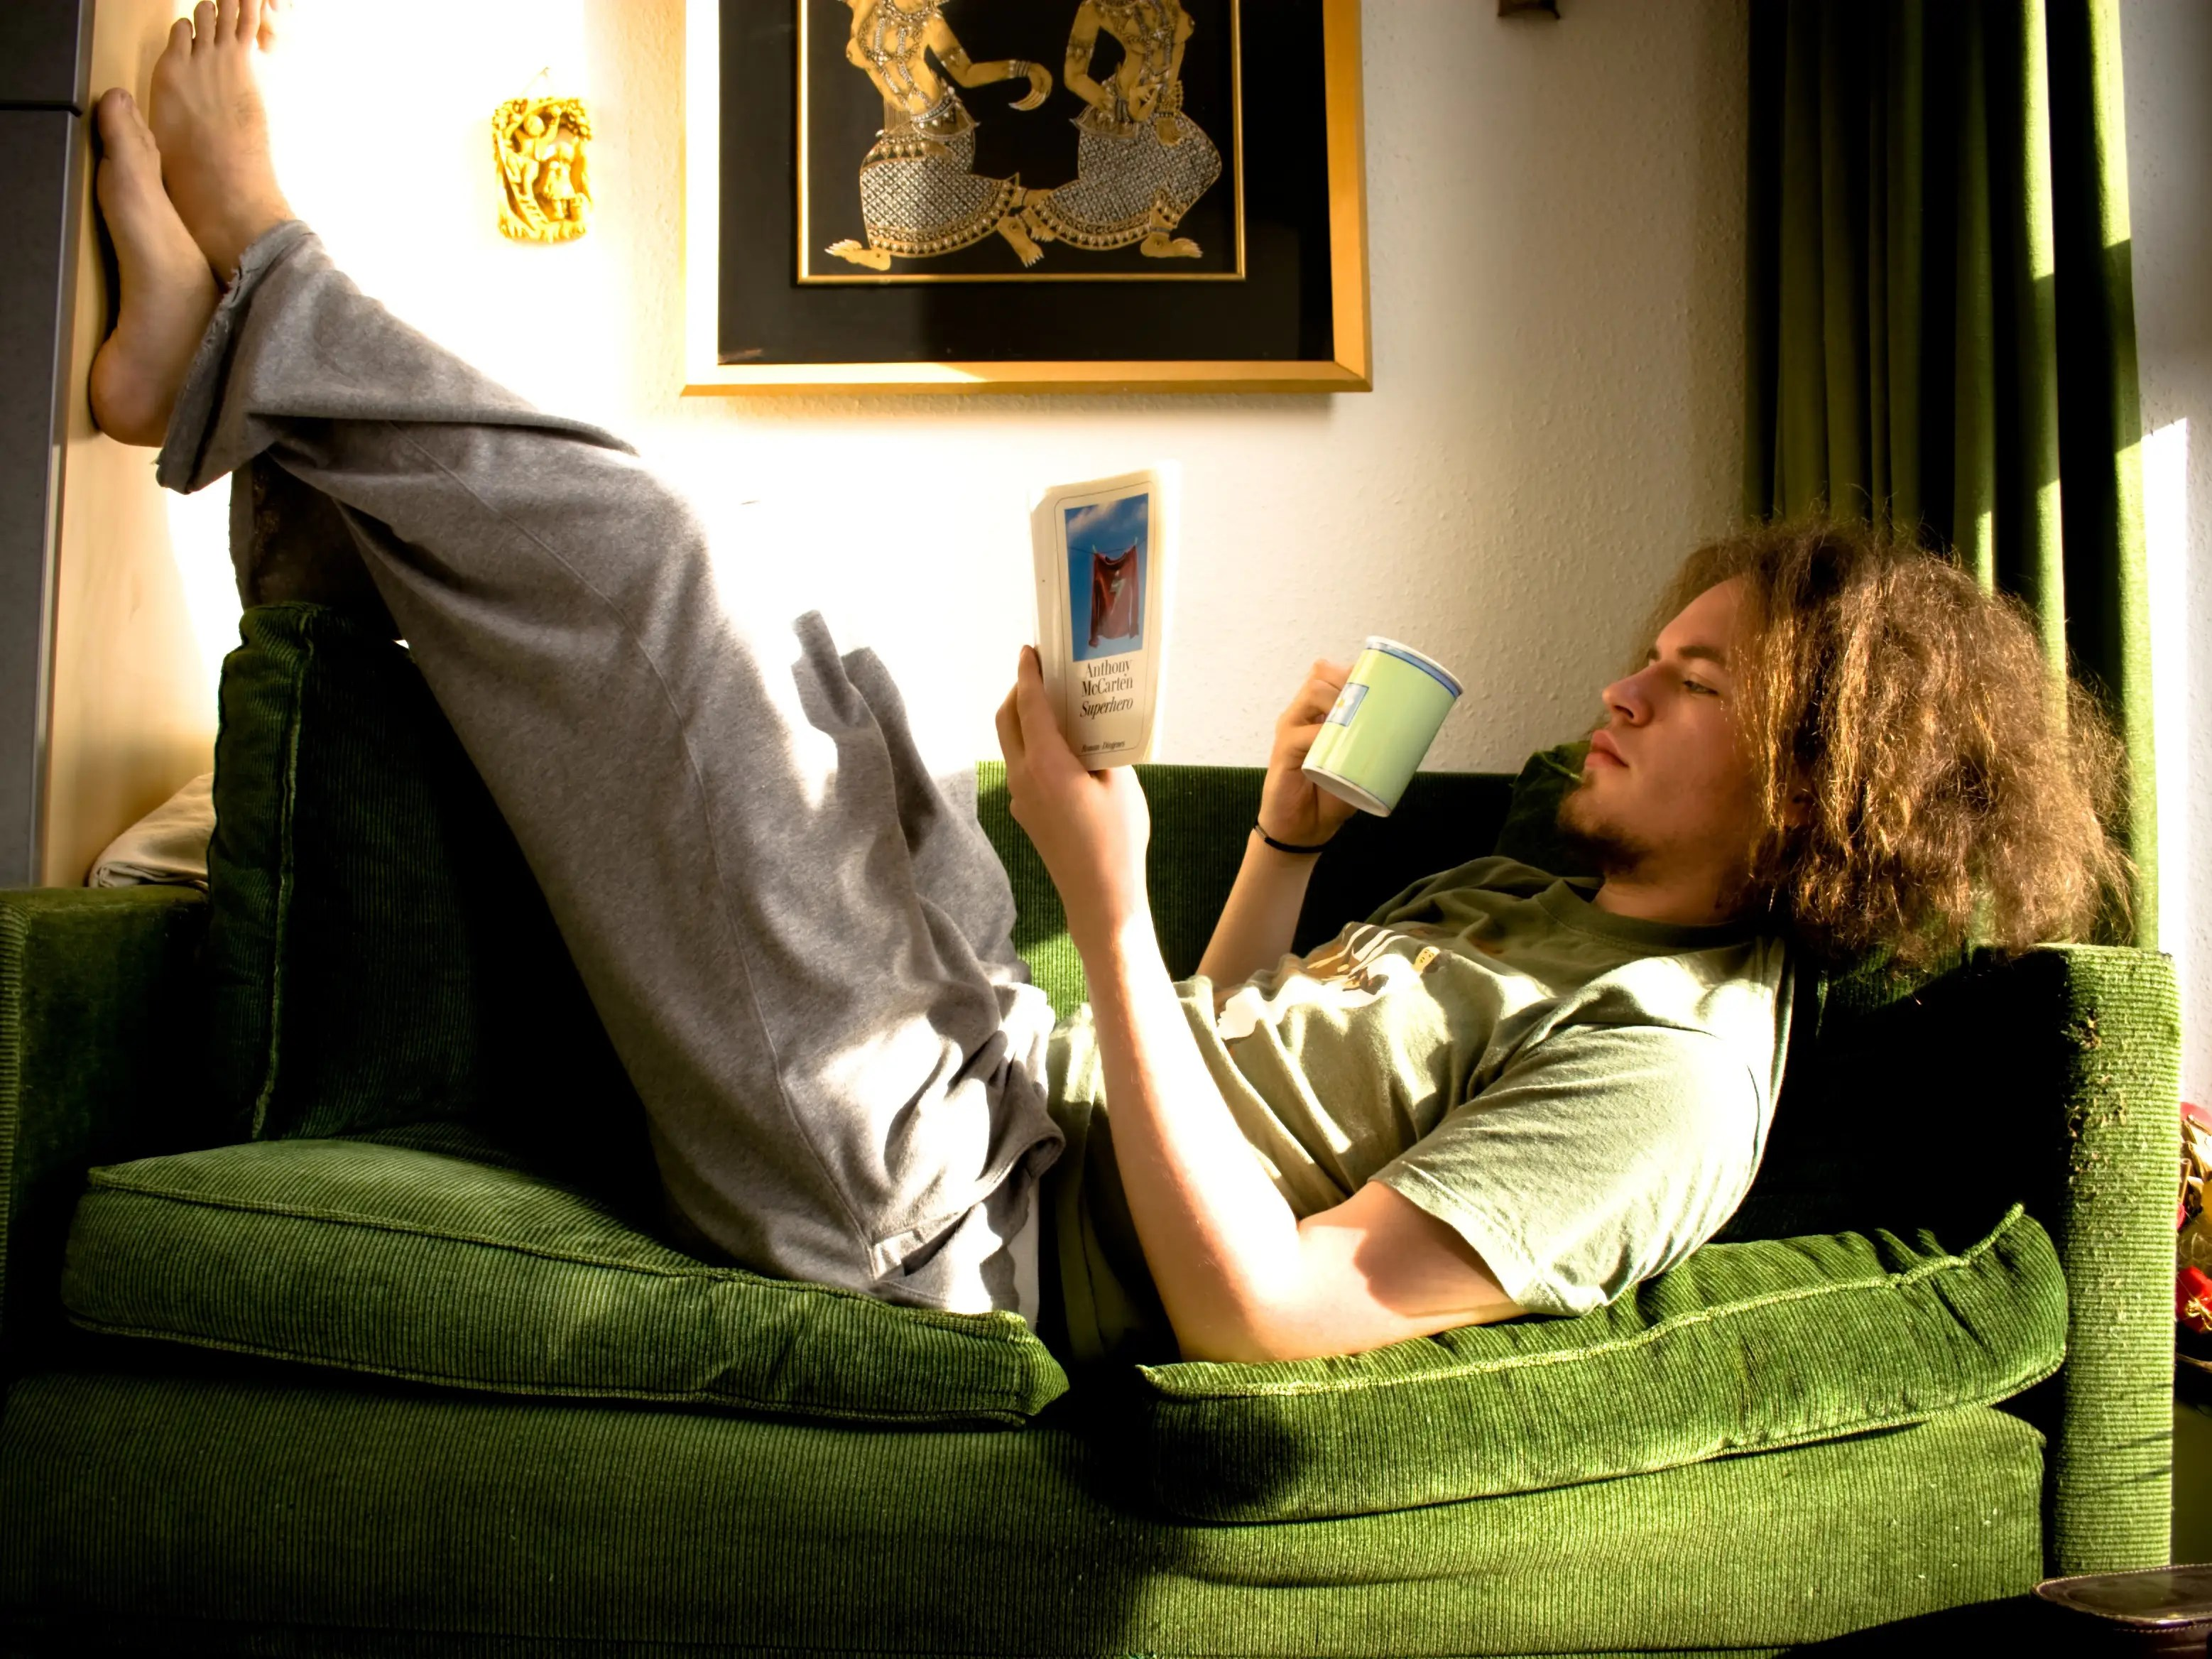 guy reading on a couch books